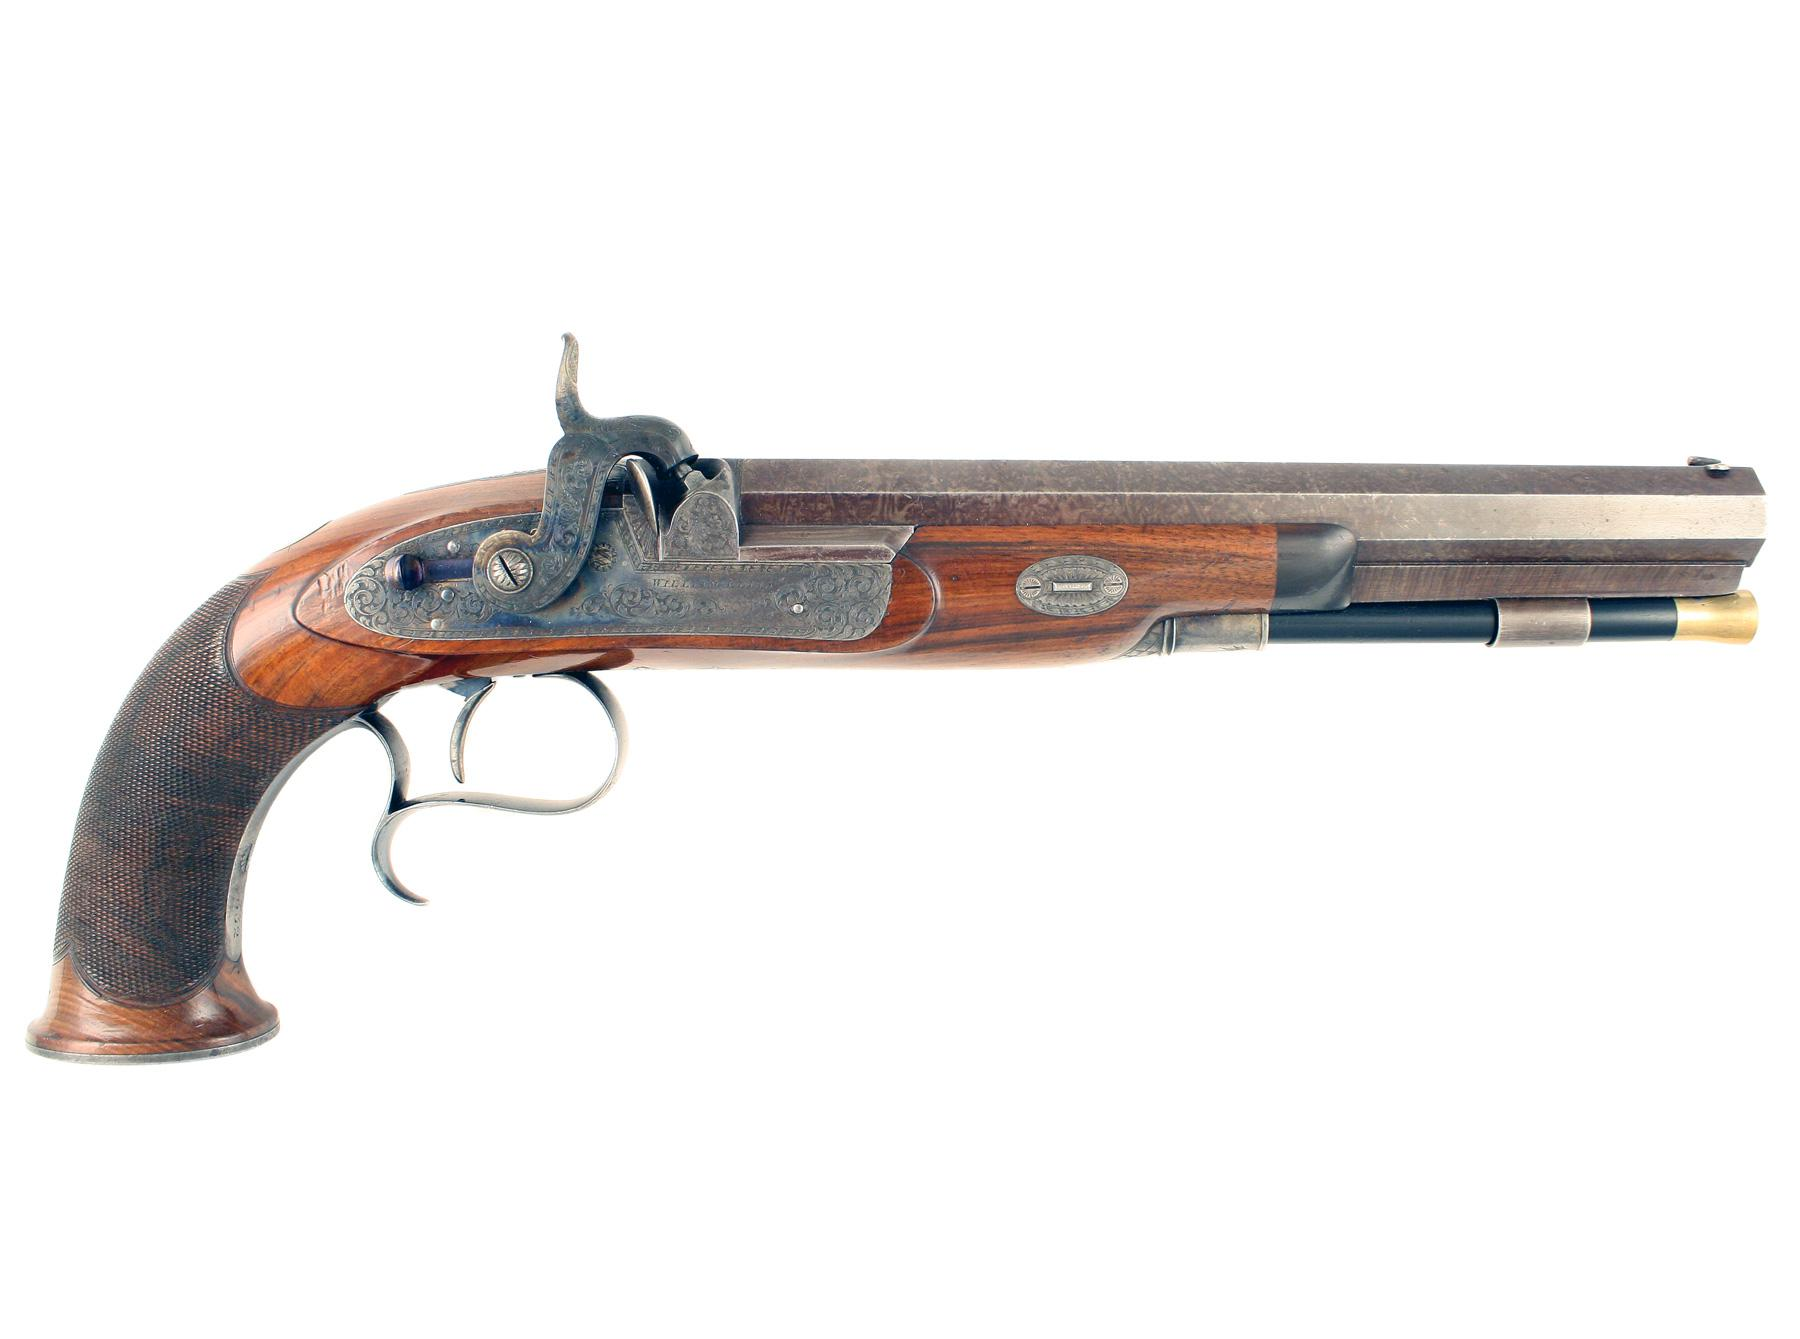 A Superb Percussion Pistol by W. Ellis